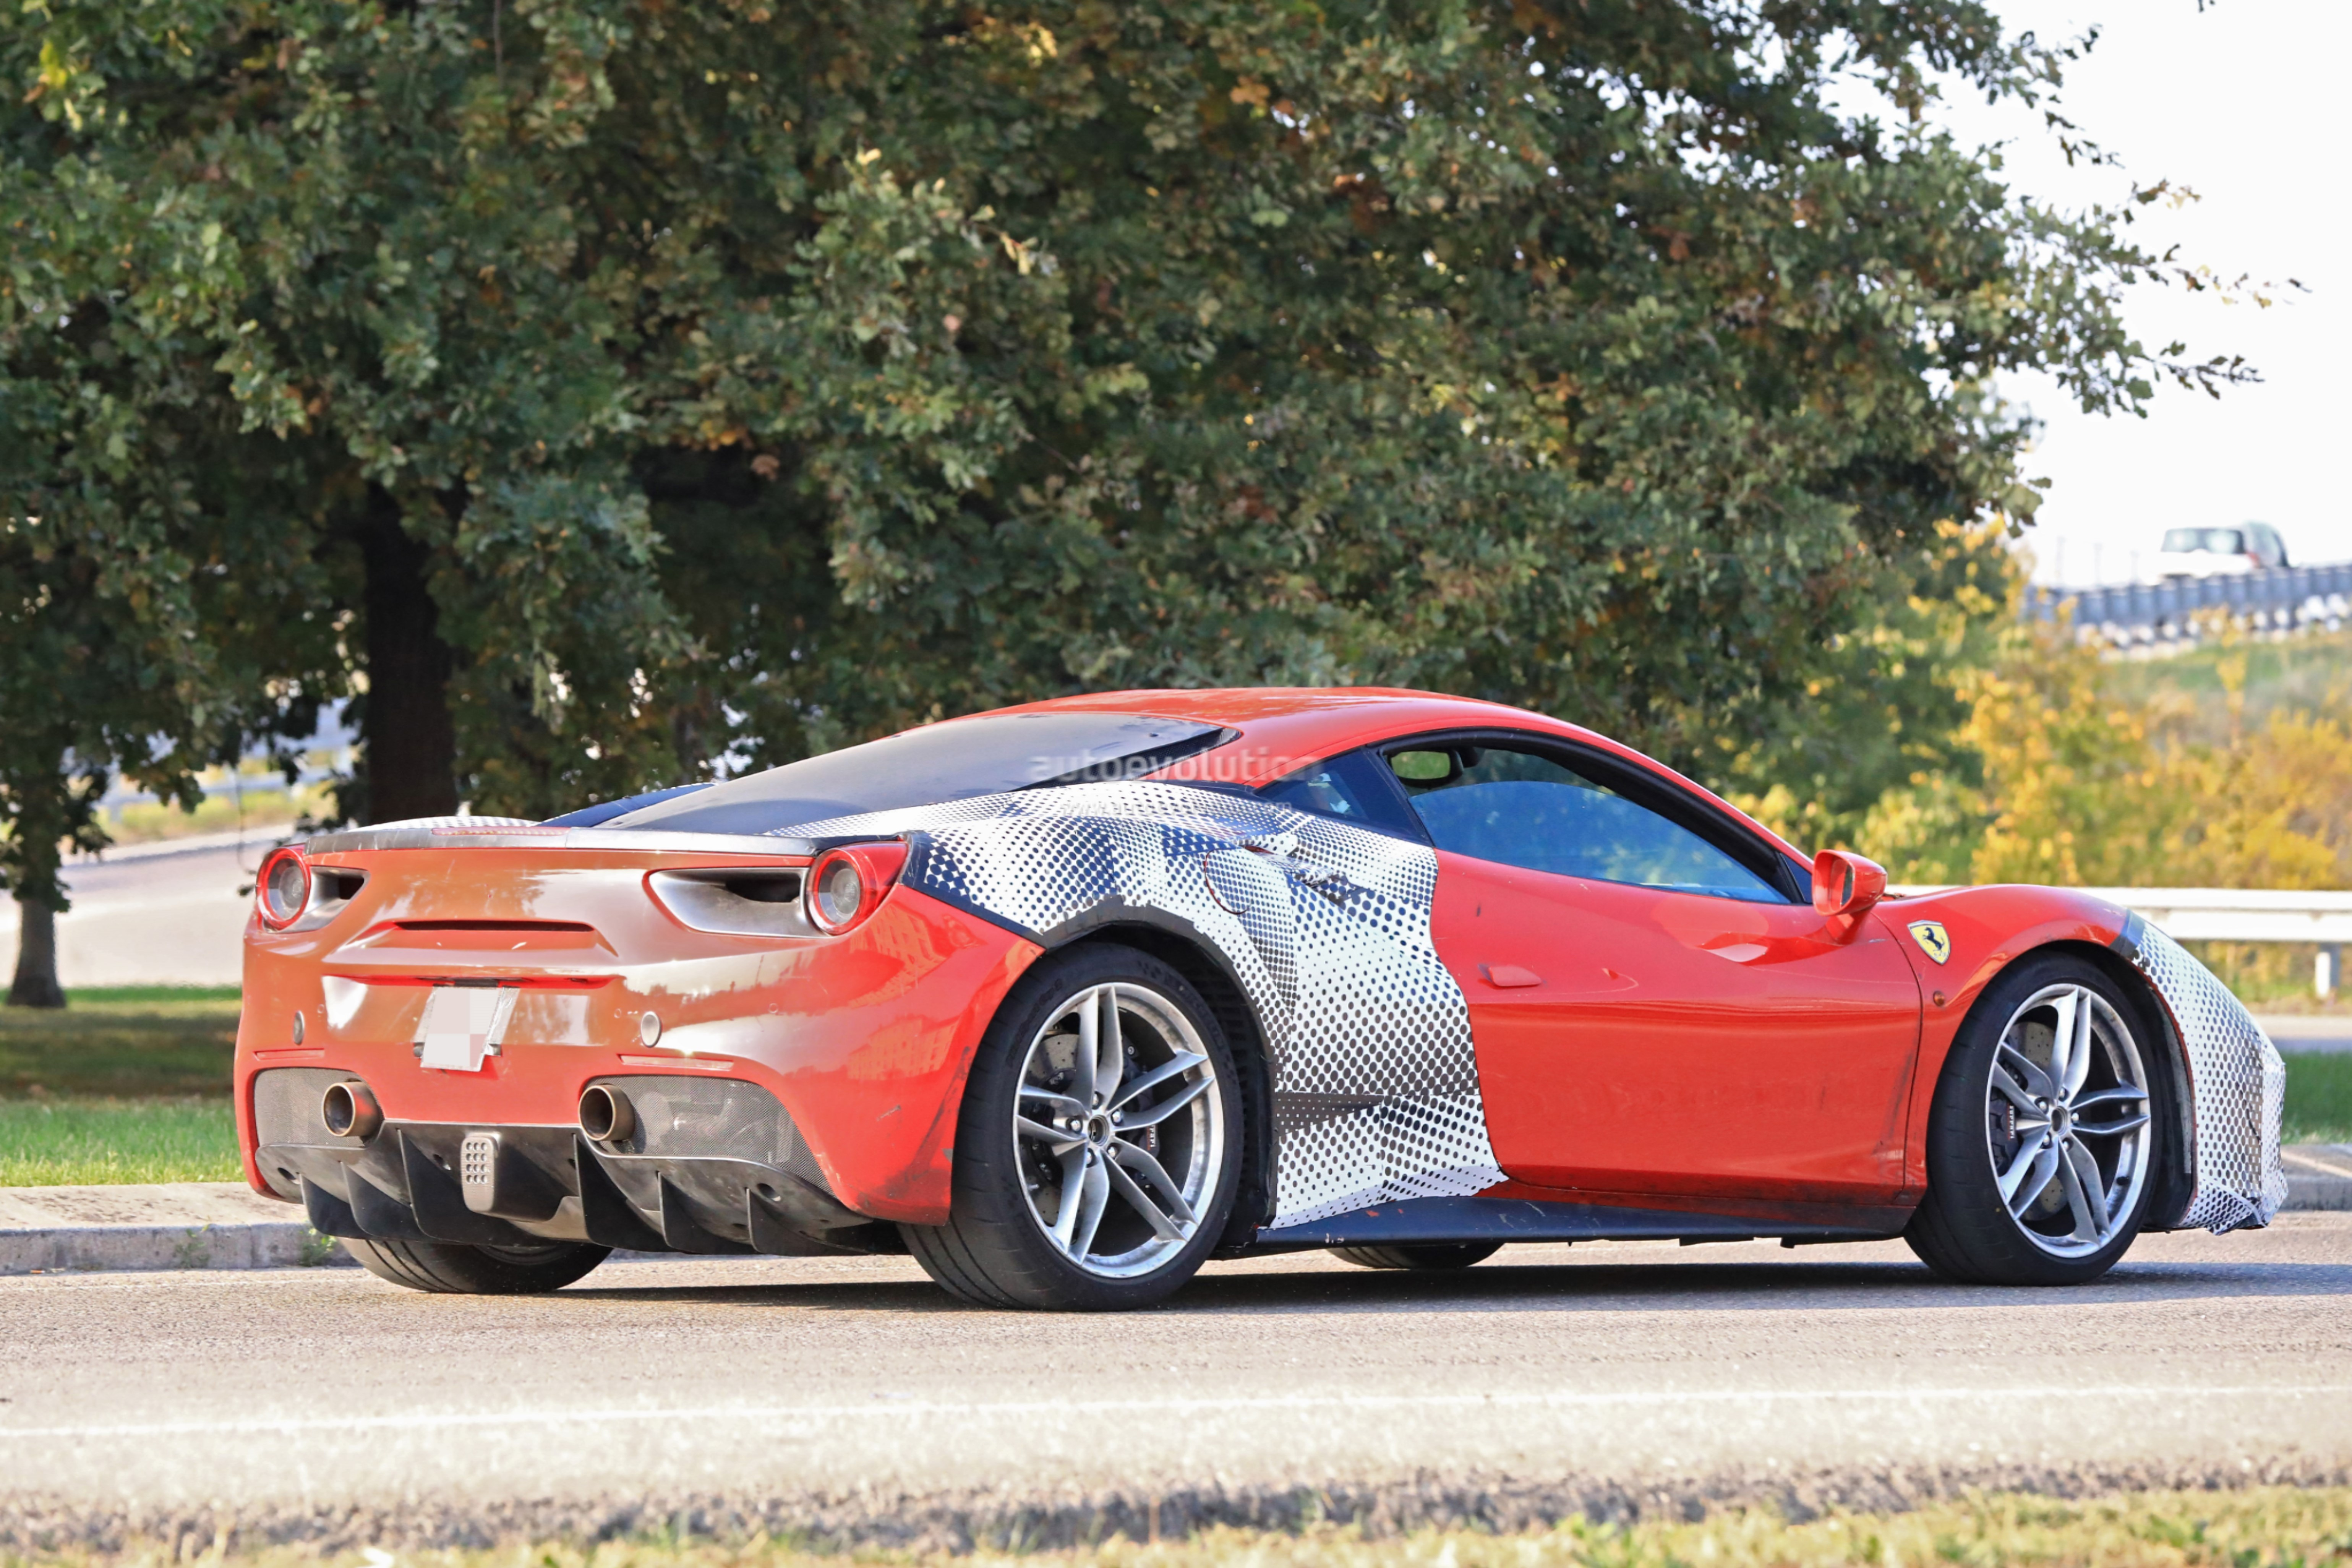 ferrari 488 gto special series coupe confirmed by carb document autoevolution. Black Bedroom Furniture Sets. Home Design Ideas